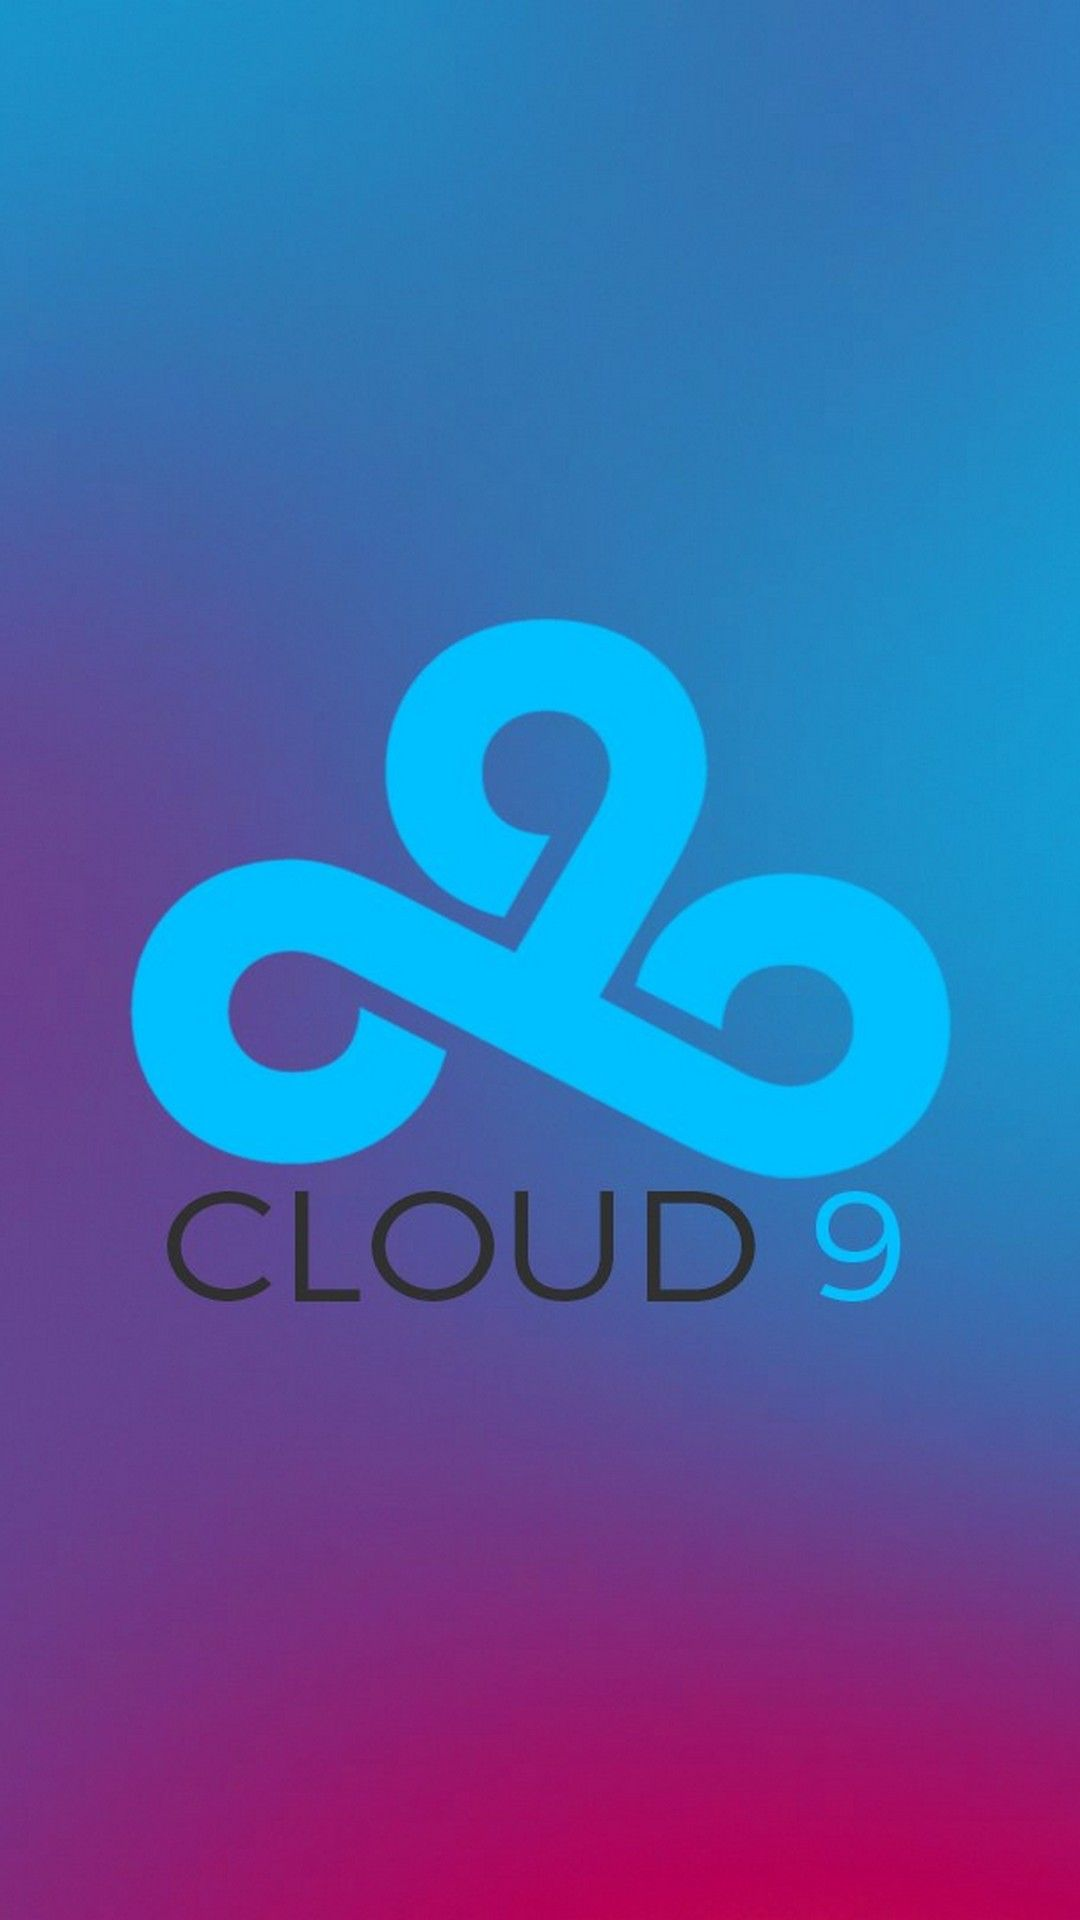 1080x1920 Cloud9 iPhone Wallpaper | iPhoneWallpapers | Iphone wallpaper, Best ...